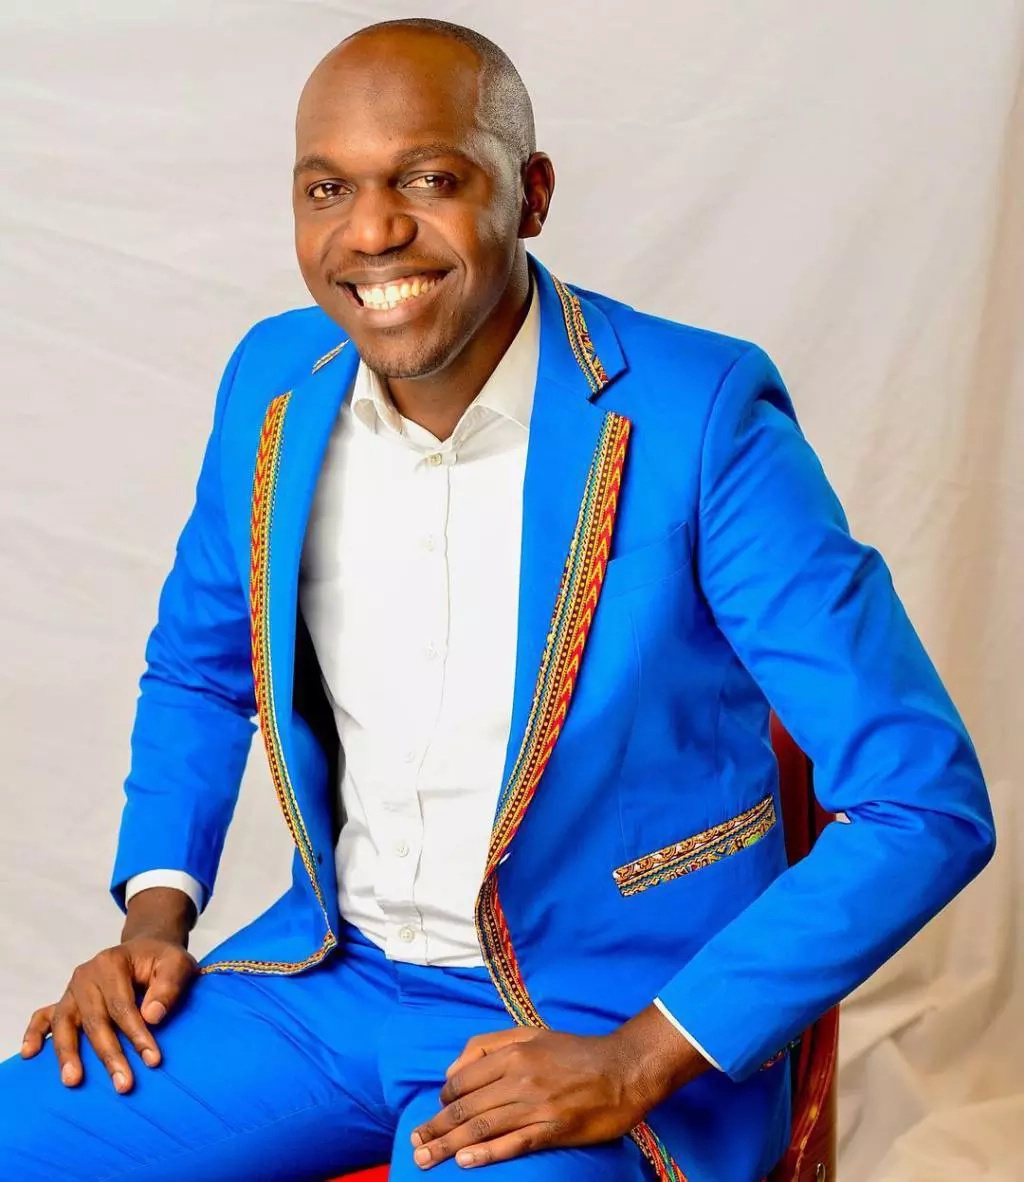 Larry Madowo quit Equity Bank just before being fired